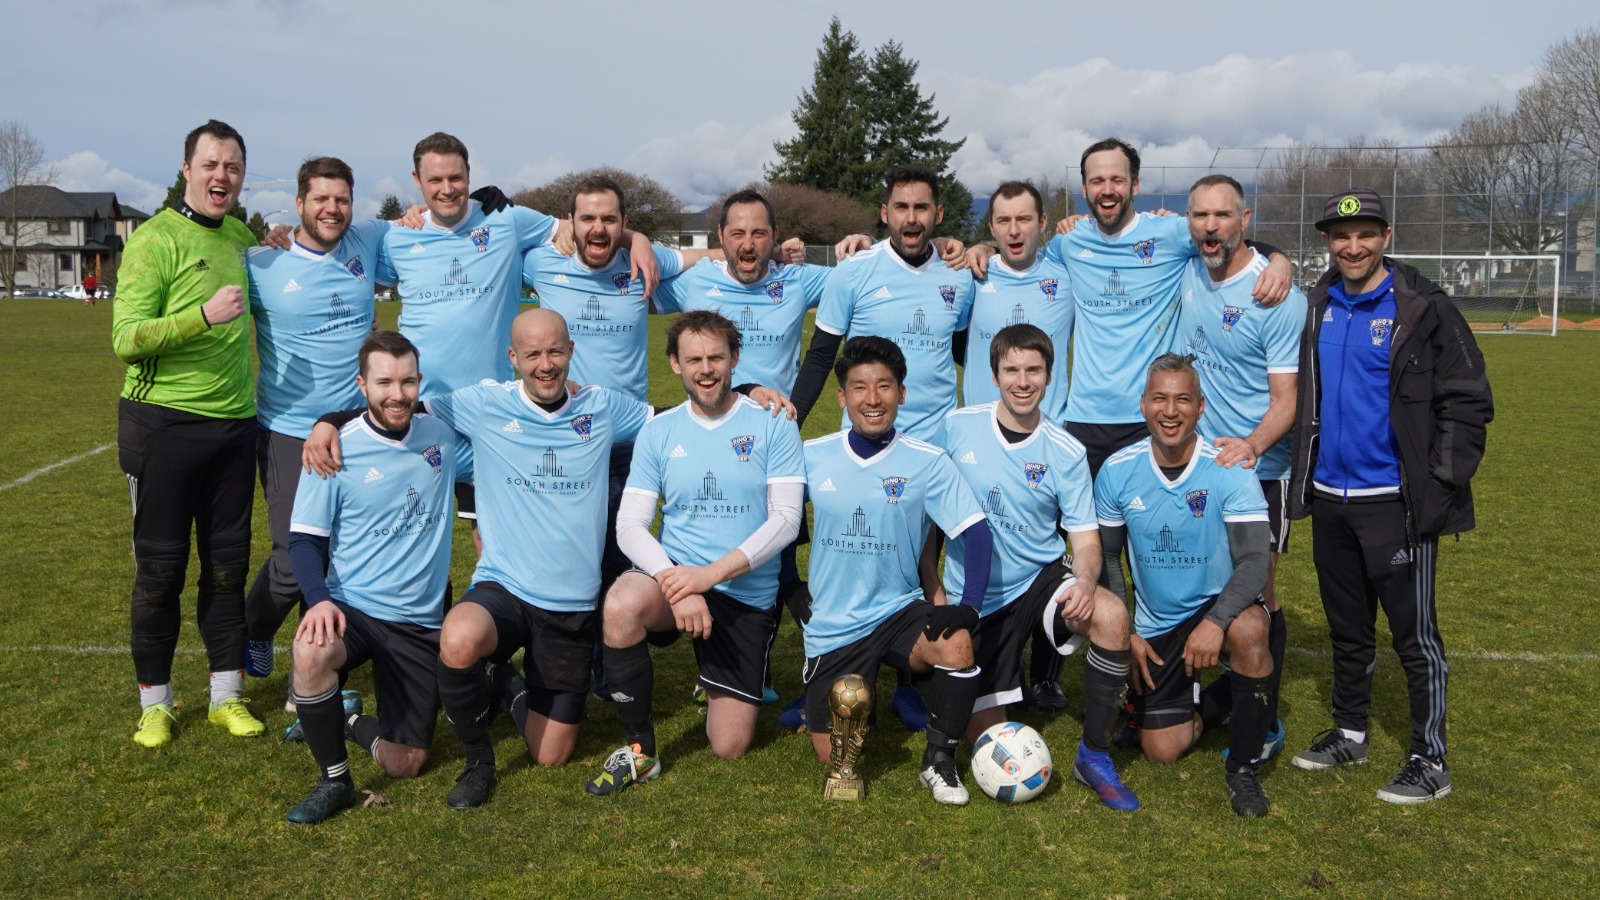 The Rino Bulldogs over 35s